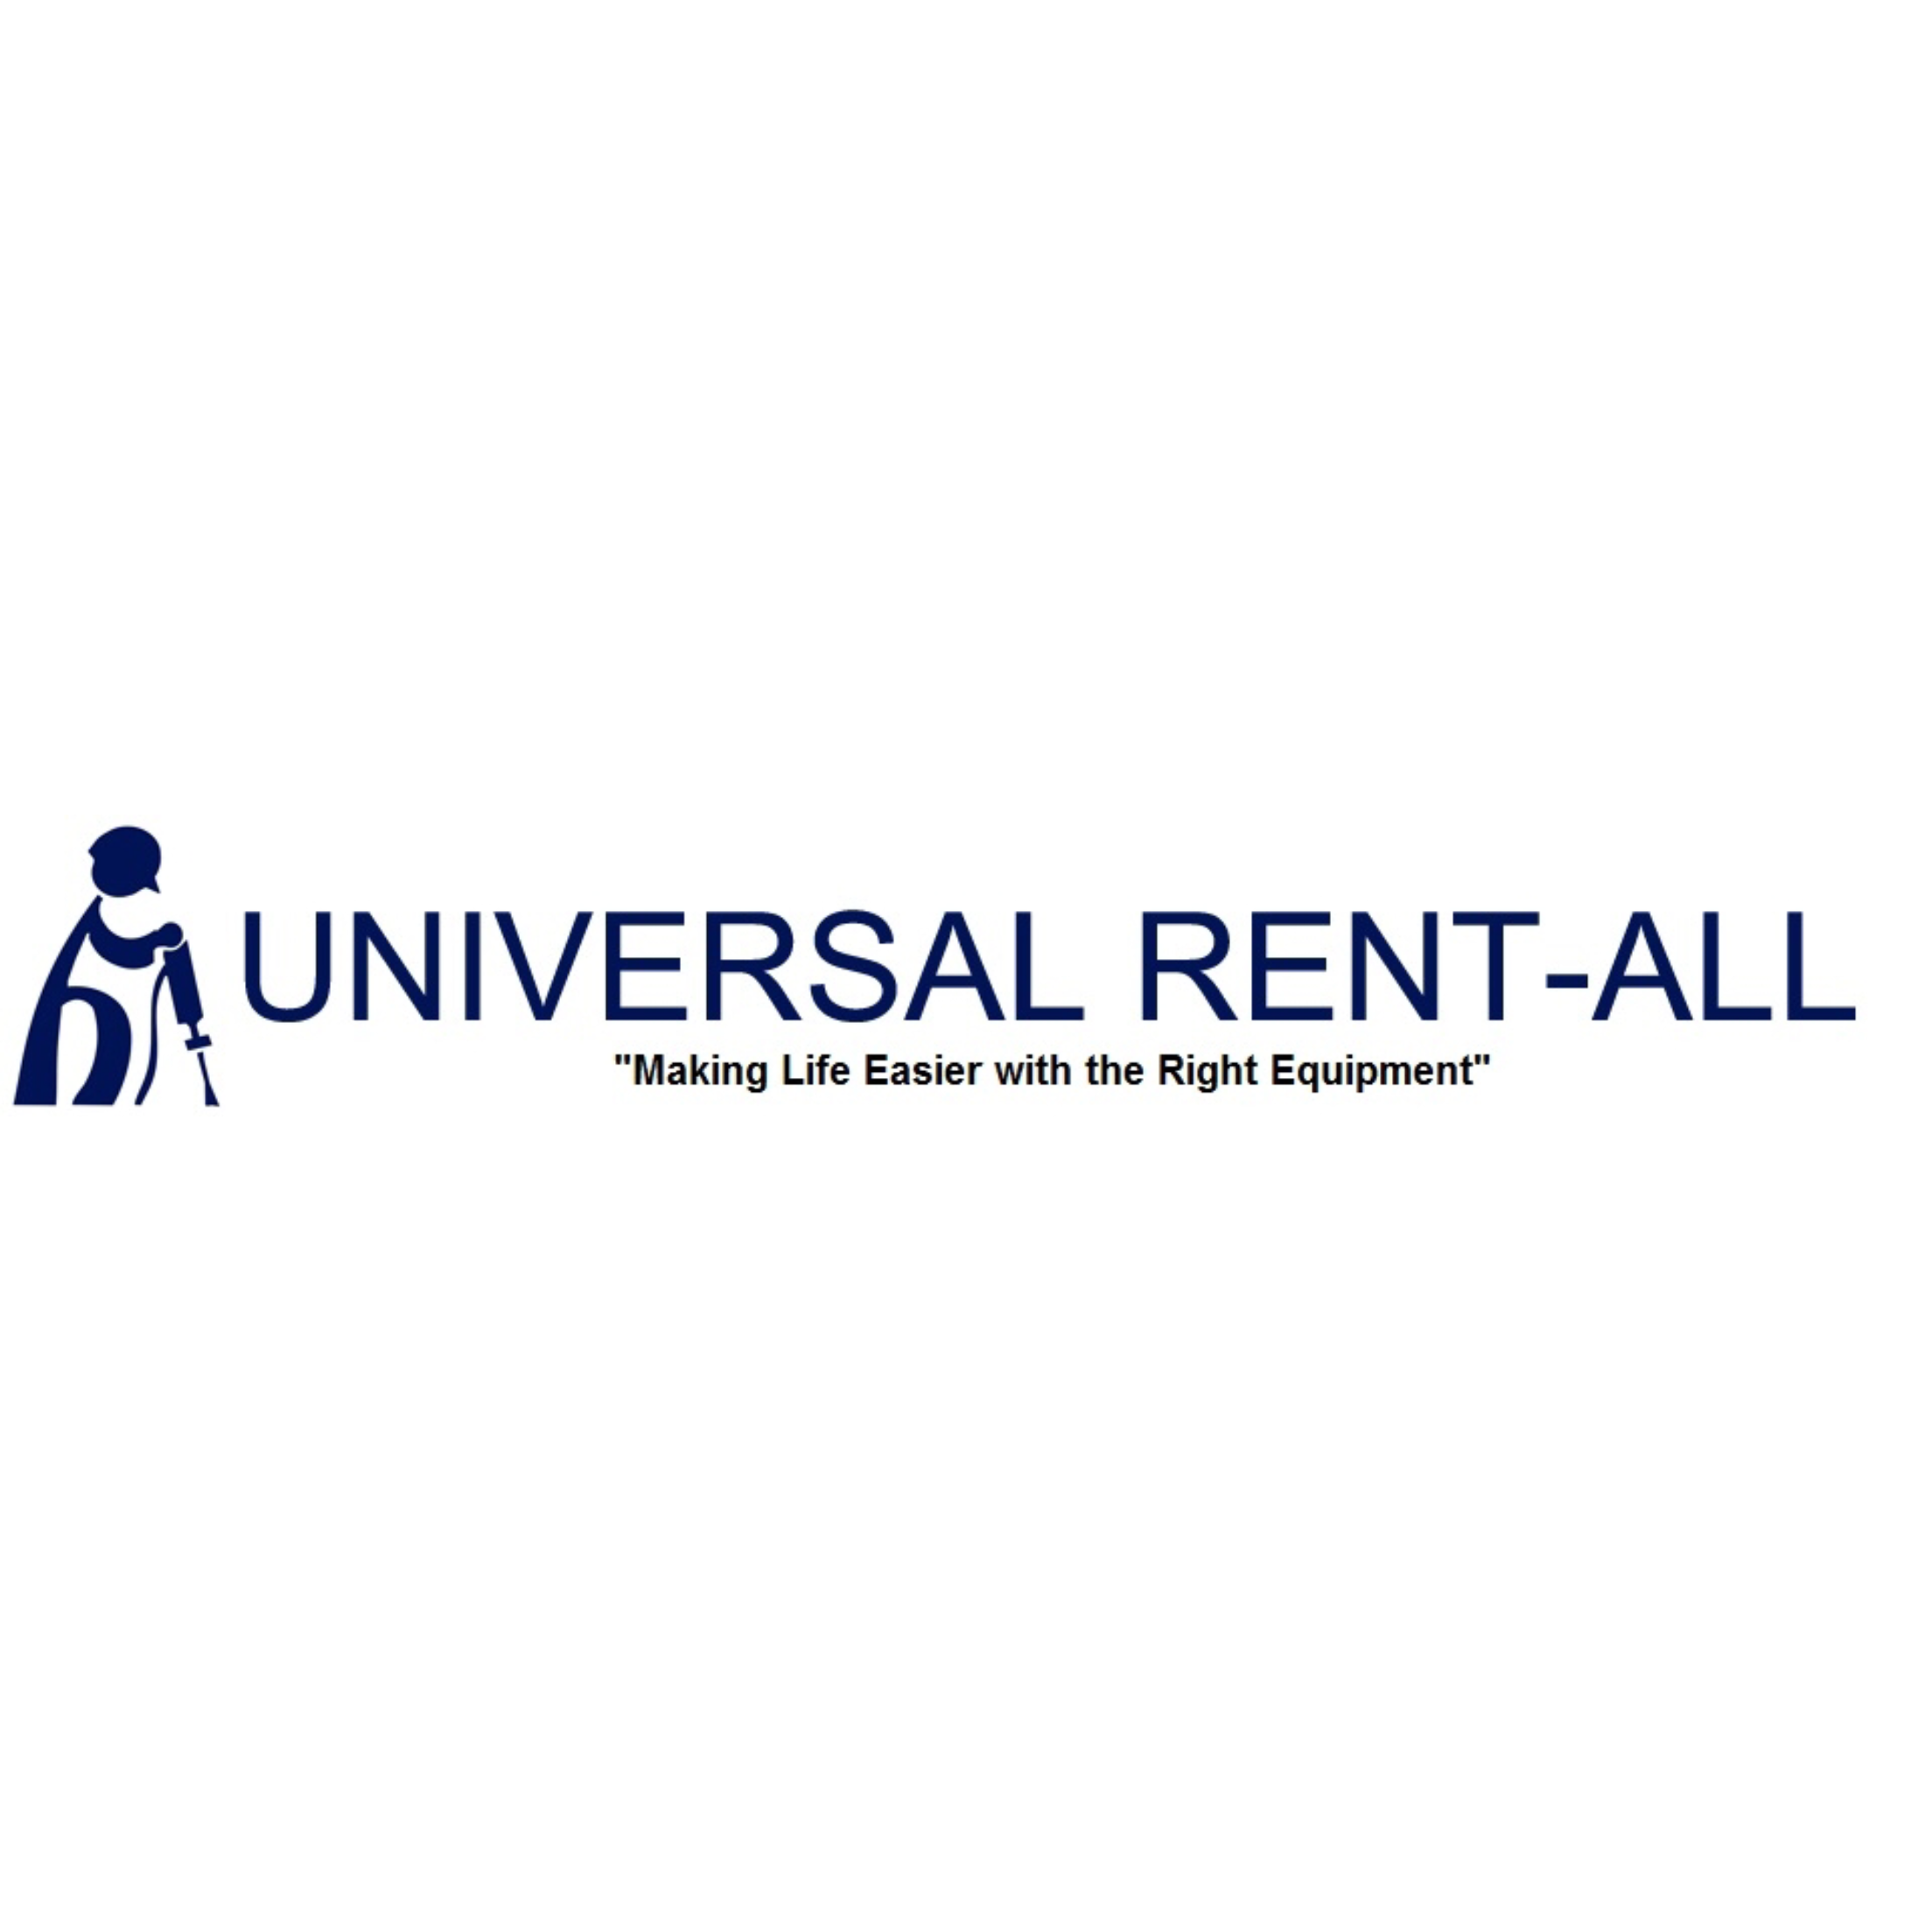 Universal Rent-All